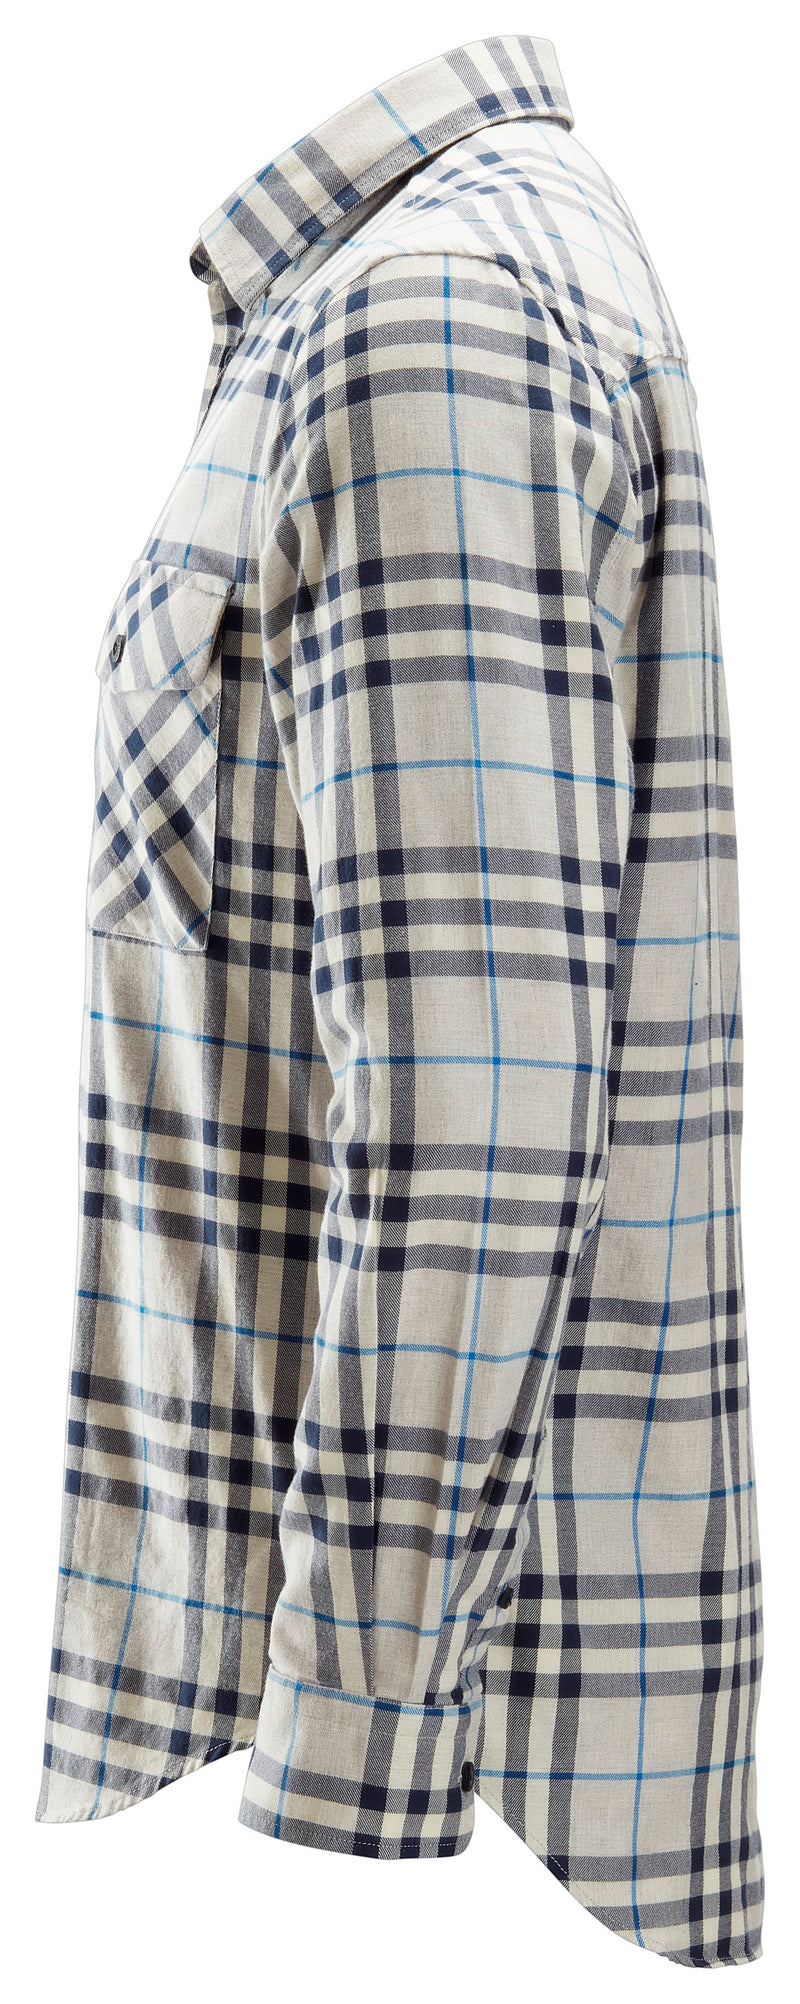 snickers 8516 AW Flannel Check LS Shirt - Snickers Werkkledij